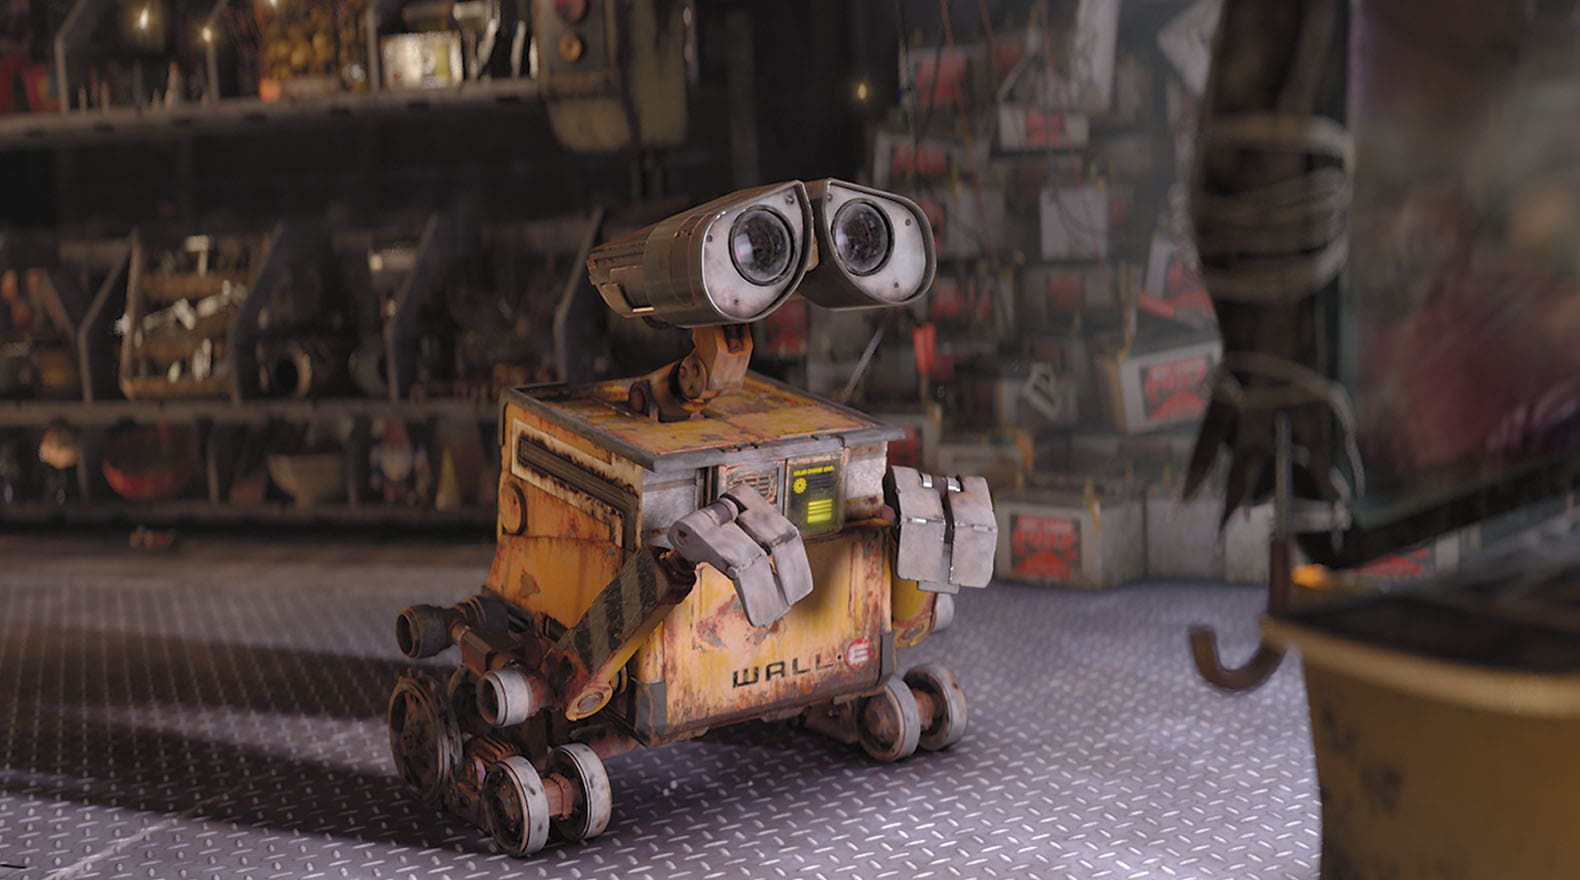 """WALL•E learns about humans and emotions by watching an old film. From the movie """"Wall-E"""""""